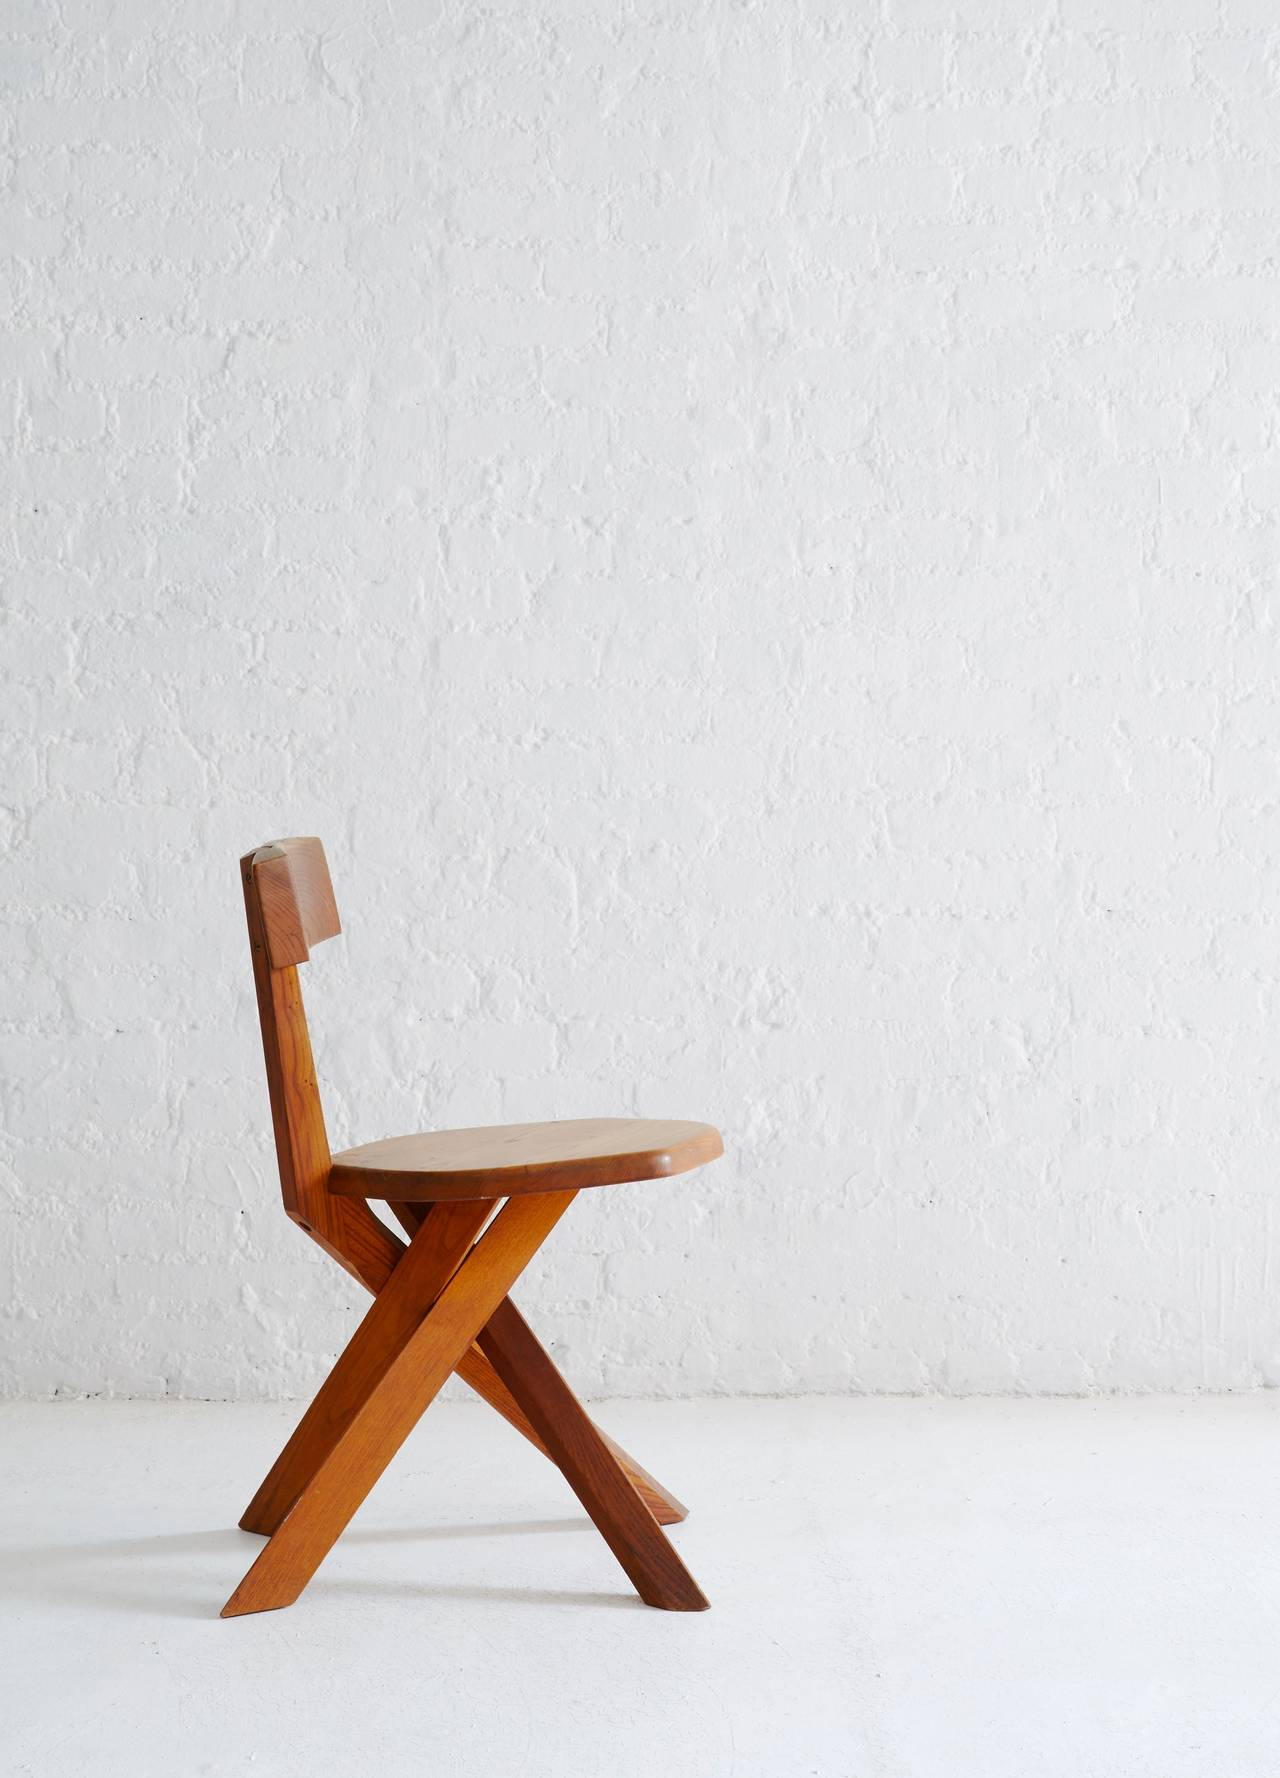 French S34 Model Chair by Pierre Chapo For Sale